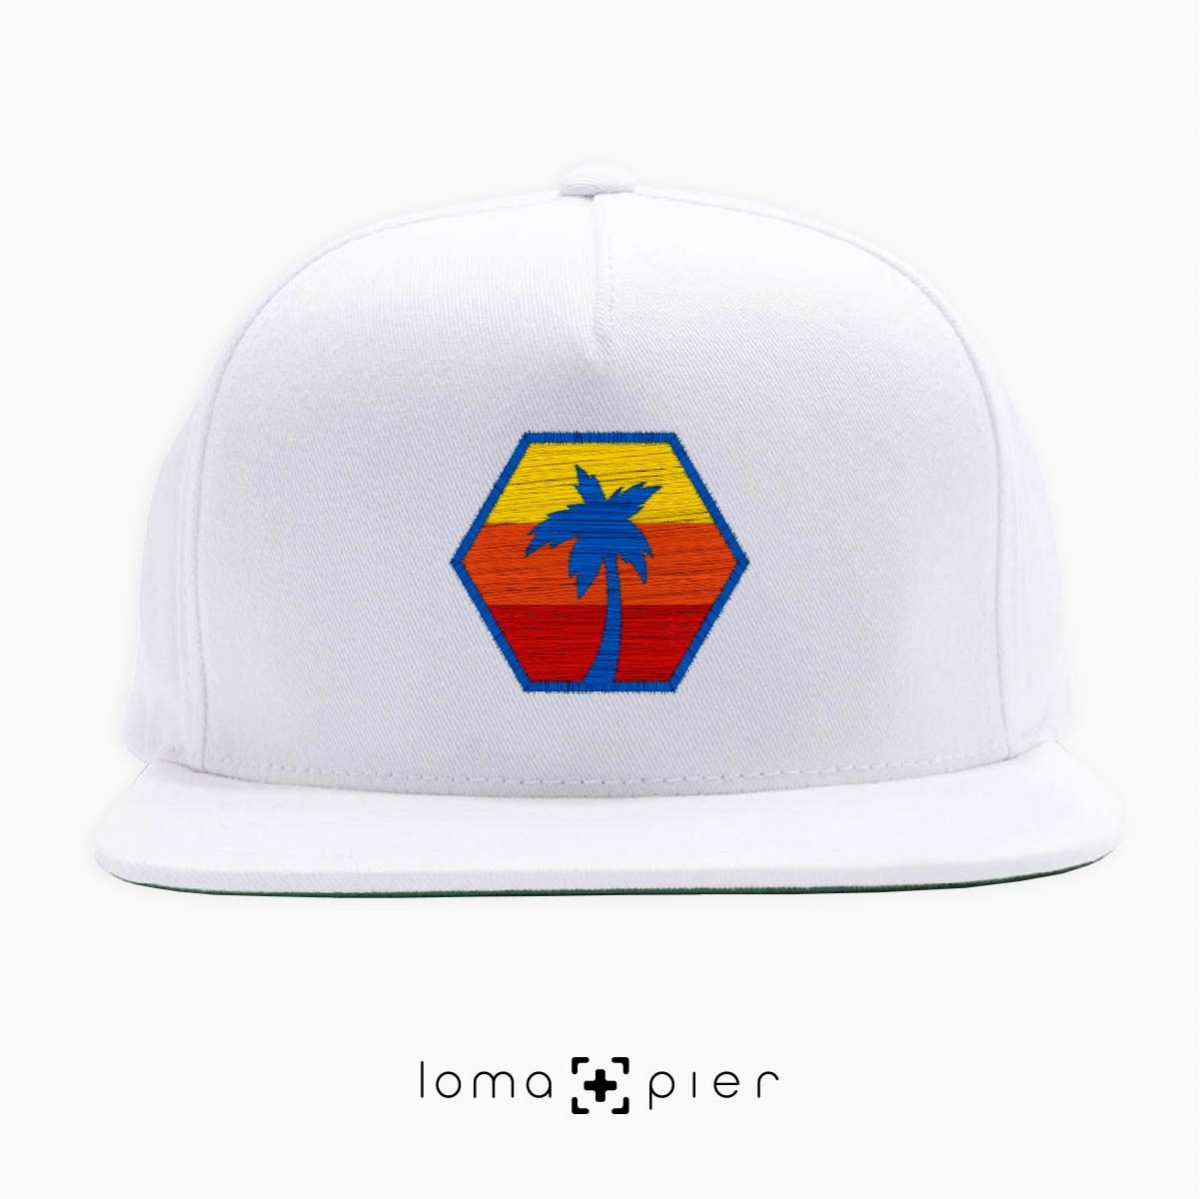 HEXAGON TO THE BEACH hat in white by loma+pier hat store